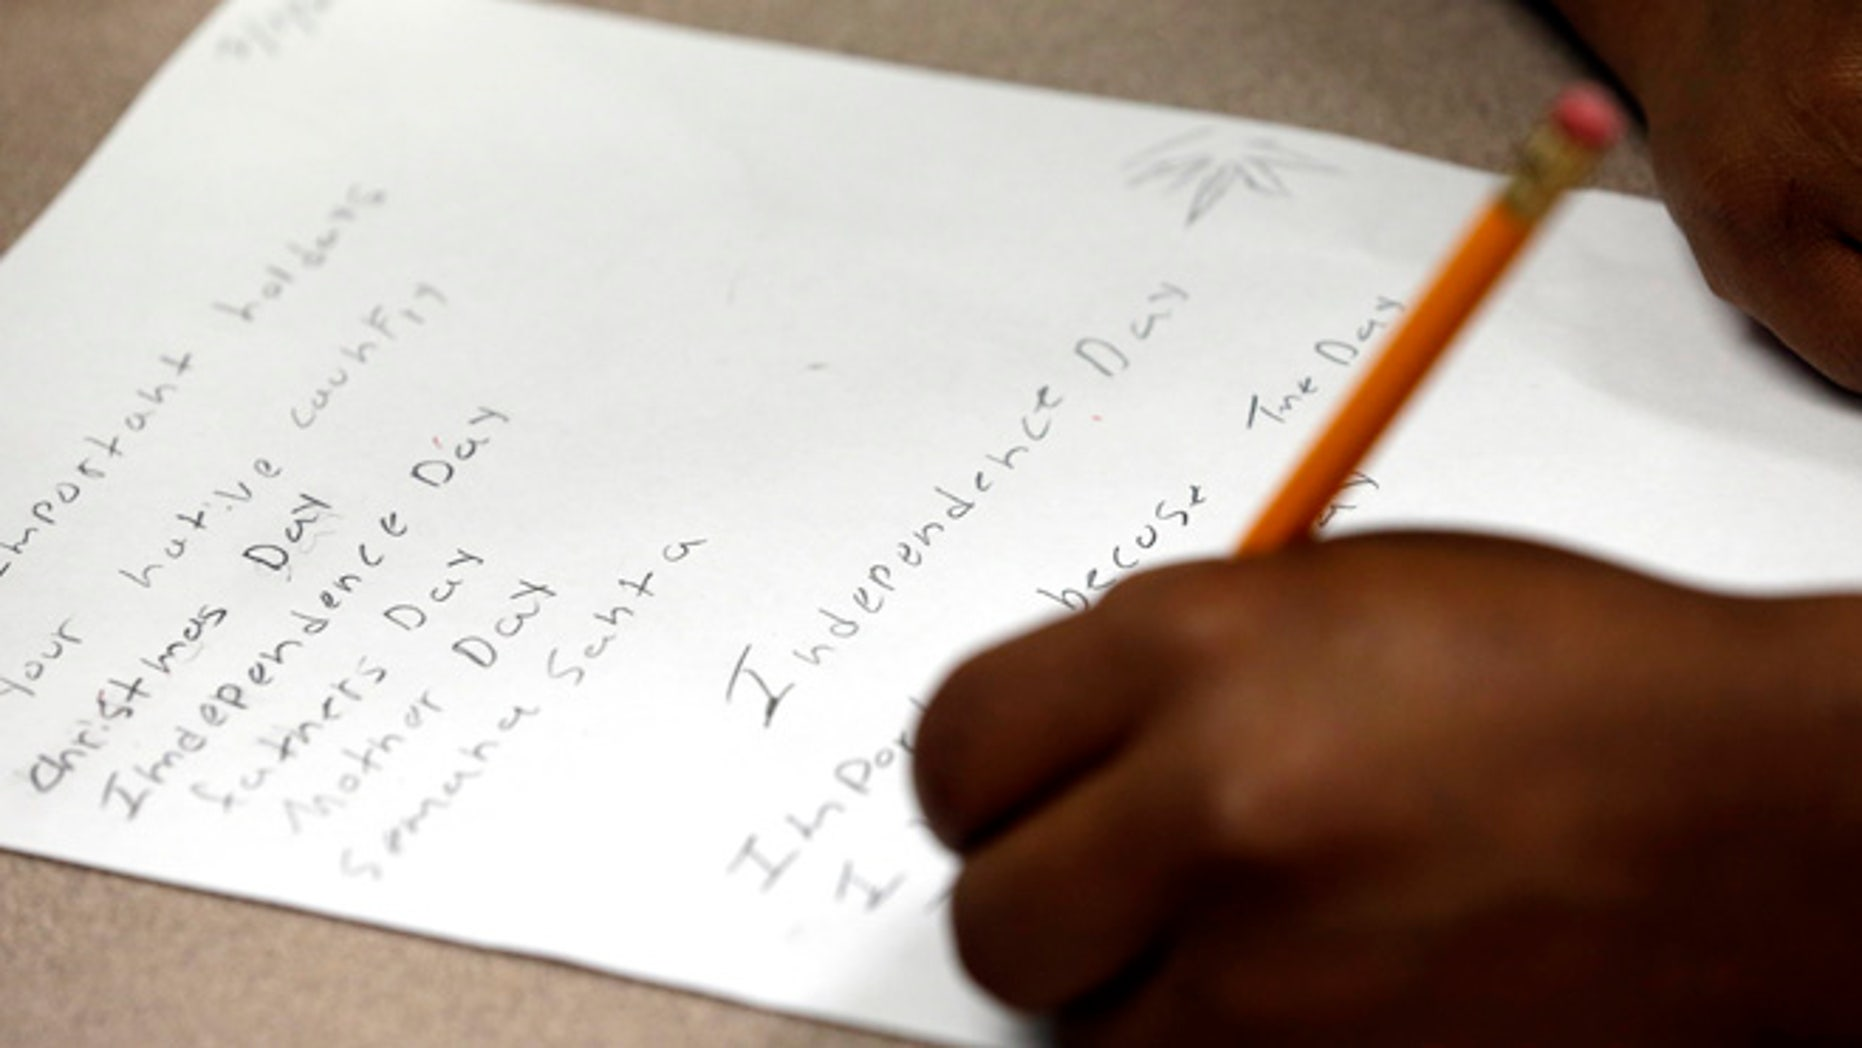 """FILE - In this July 1, 2014, file photo, a student at Liberty High School in Houston works on a holiday writing assignment. The school serves a large immigrant population, including """"unaccompanied minors."""" (AP Photo/David J. Phillip, File)"""